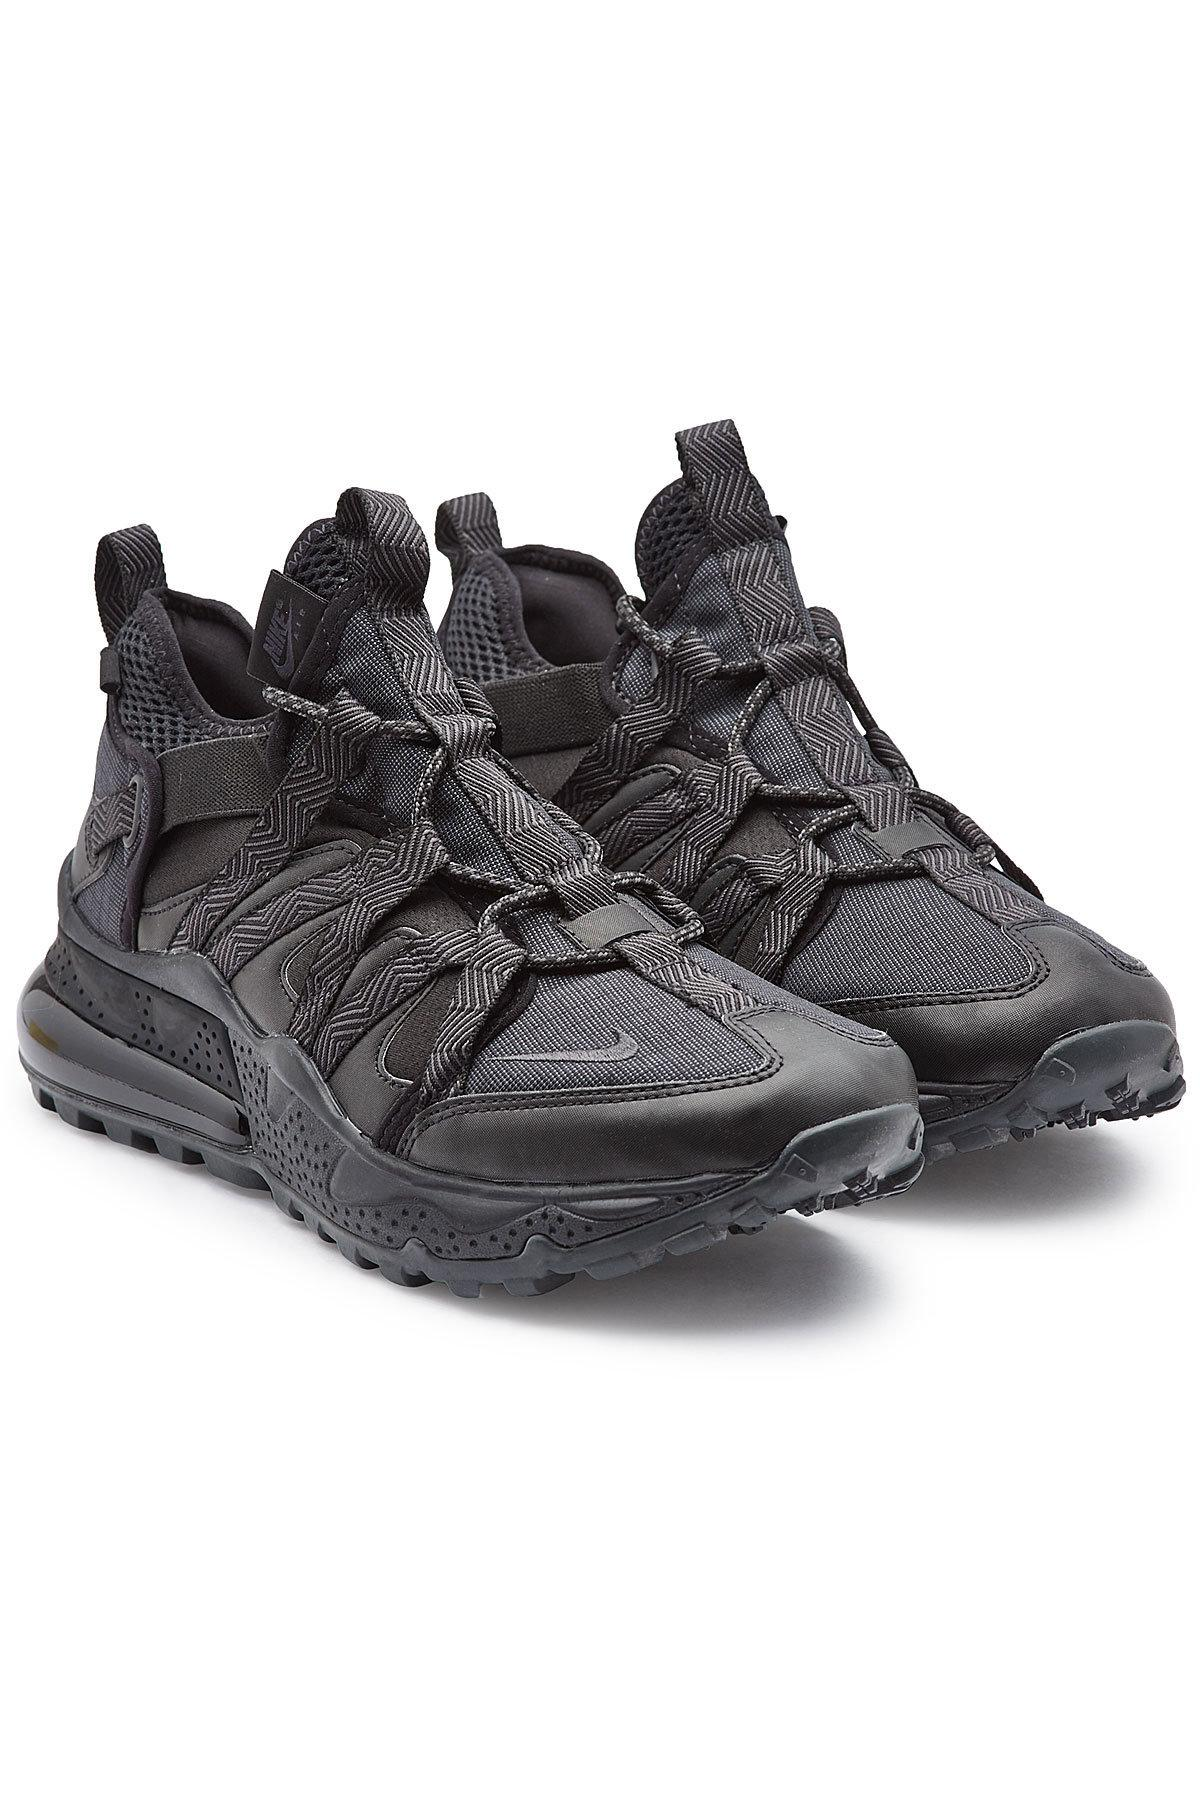 lowest price 49654 7f3f3 Nike Air Max 270 Bowfin Sneakers in Black for Men - Lyst